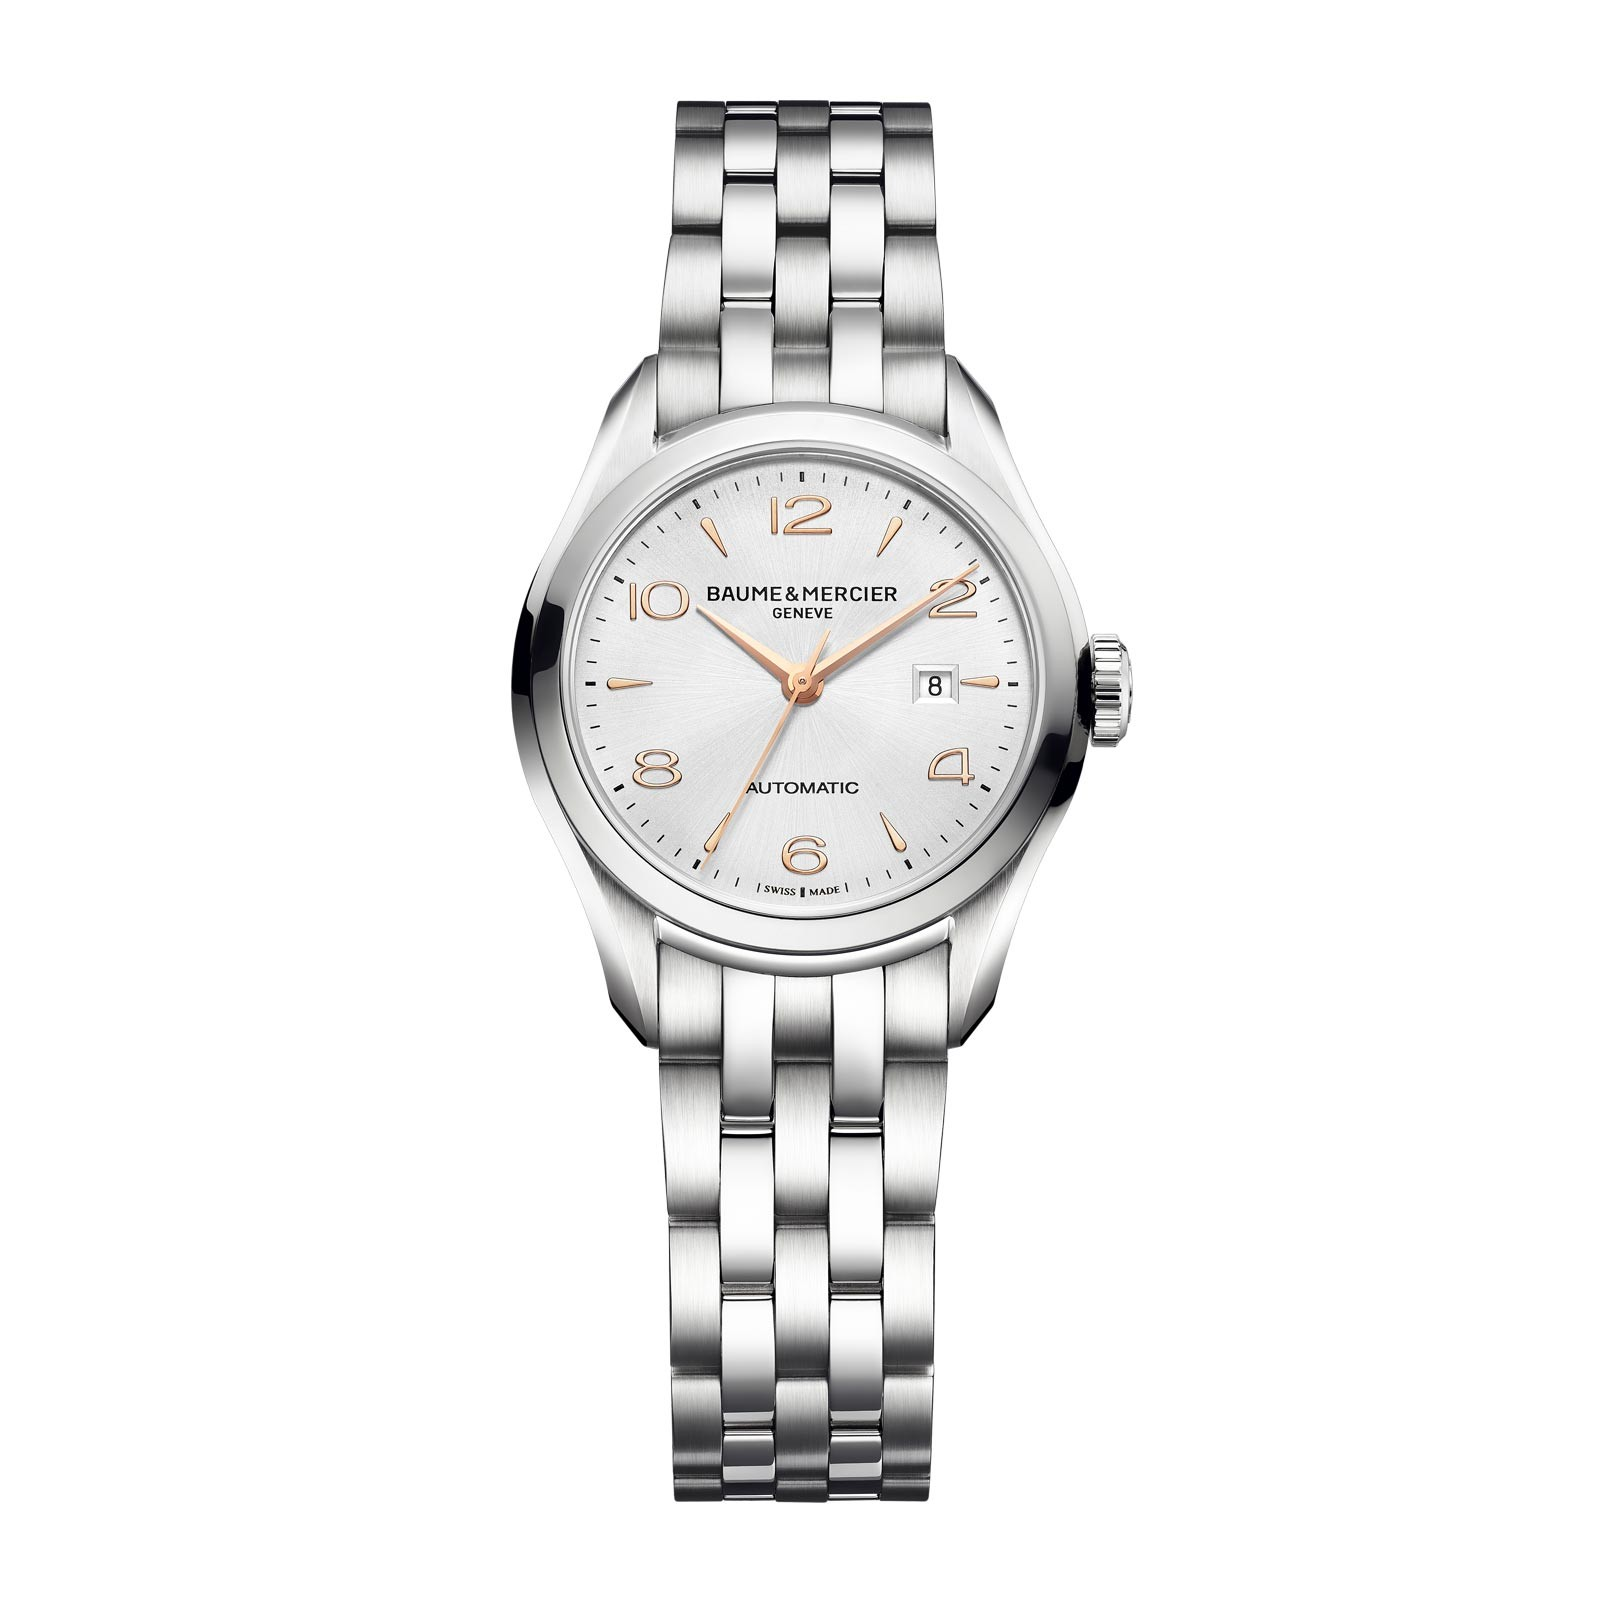 baume-et-mercier-clifton-10150-watch-face-view